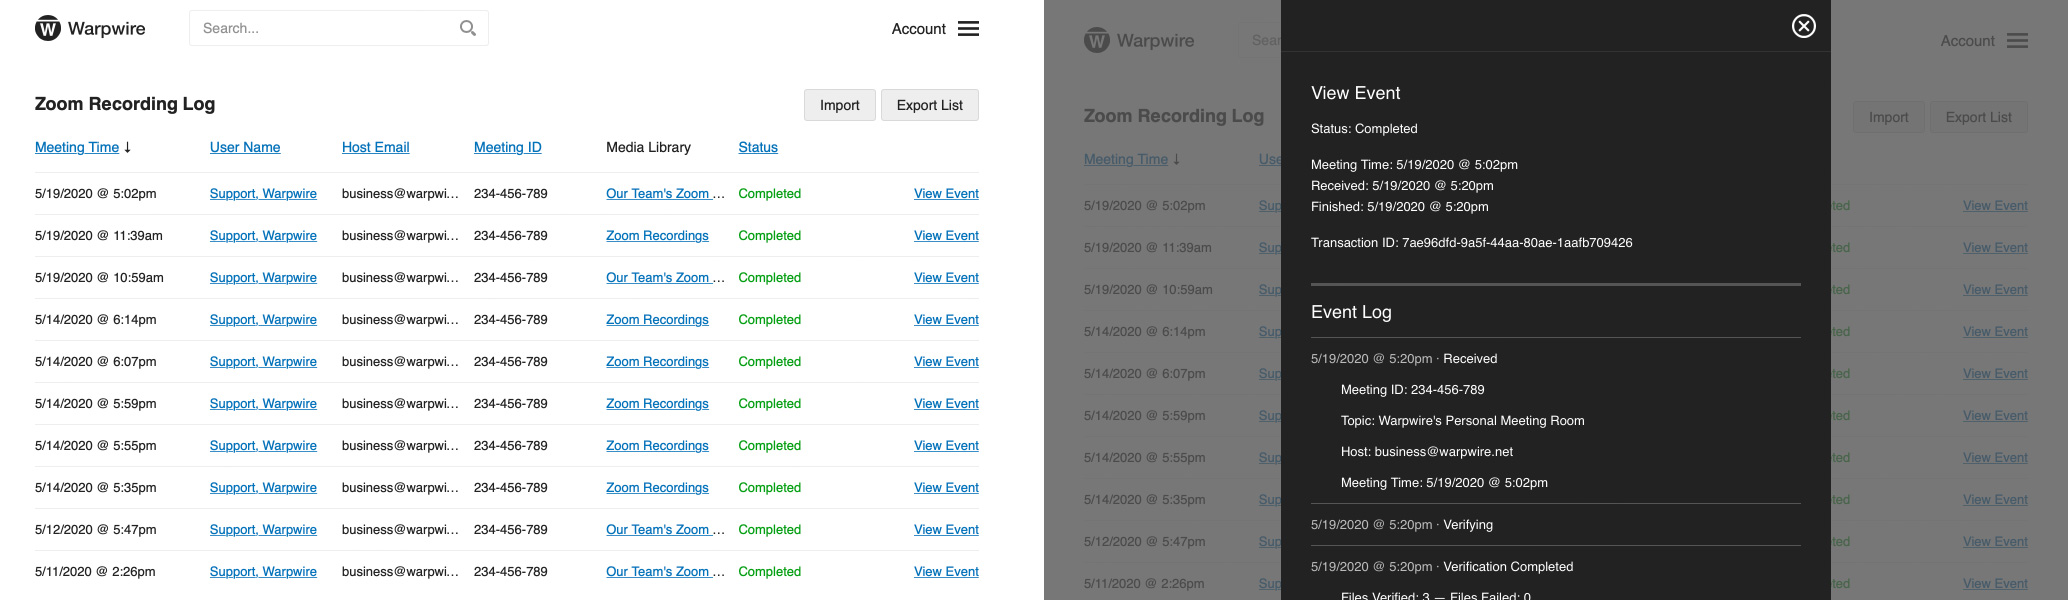 The Admin Tool inside of Warpwire allows Warpwire Admins to view detailed Zoom recording events.